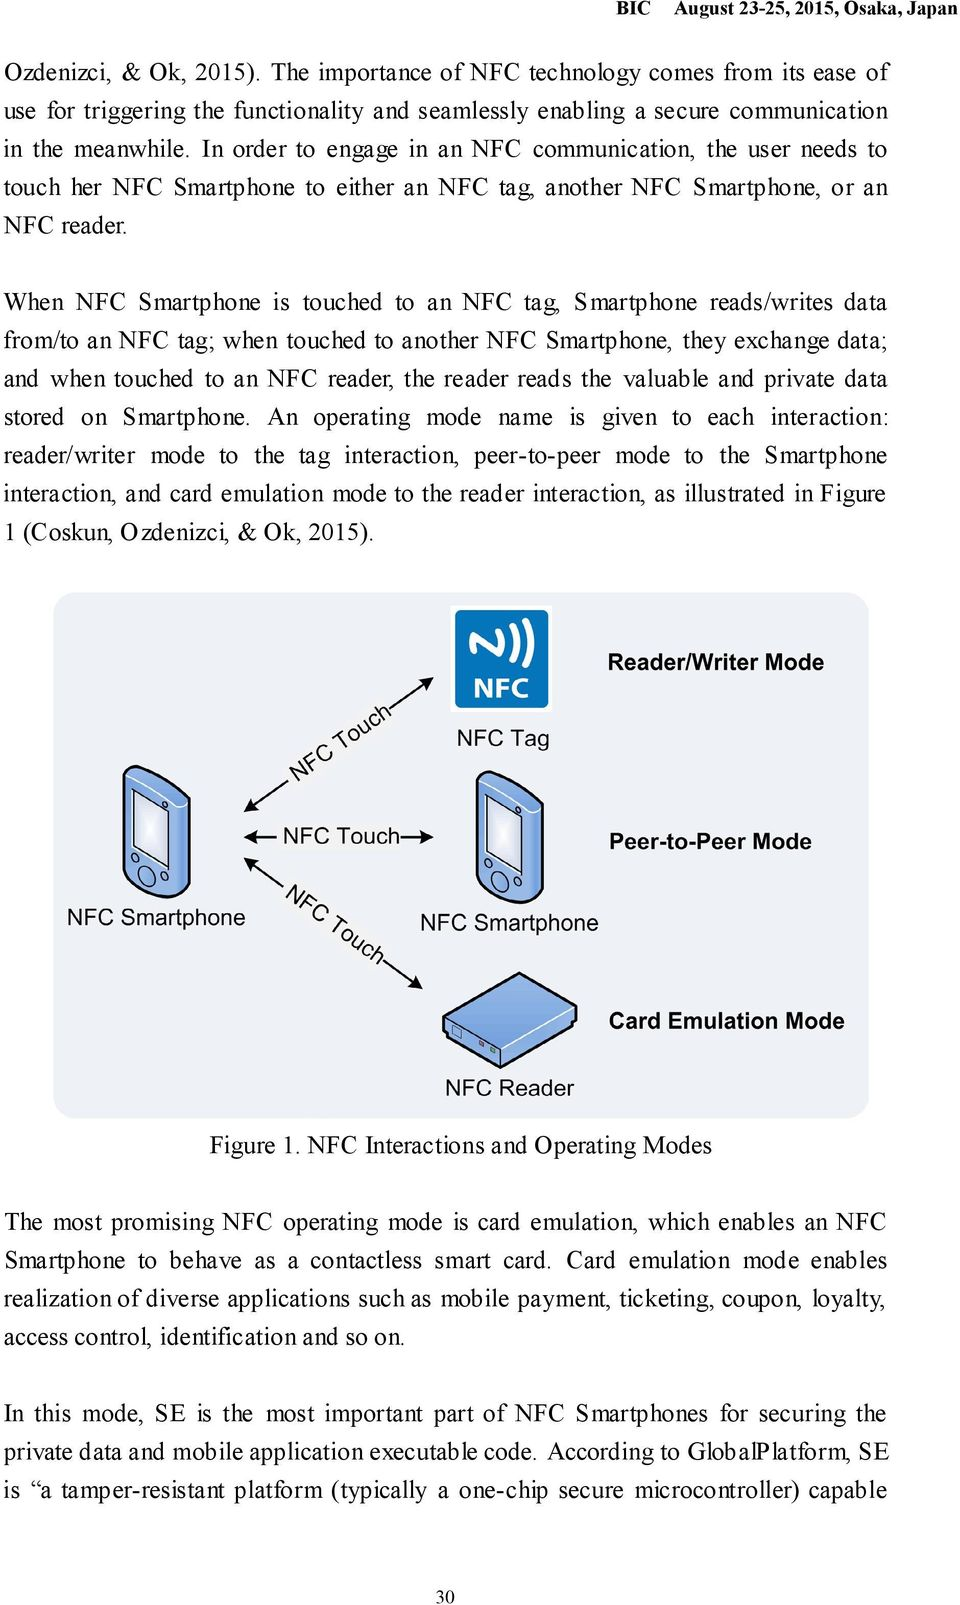 When NFC Smartphone is touched to an NFC tag, S martphone reads/writes data from/to an NFC tag; when touched to another NFC Smartphone, they exchange data; and when touched to an NFC reader, the